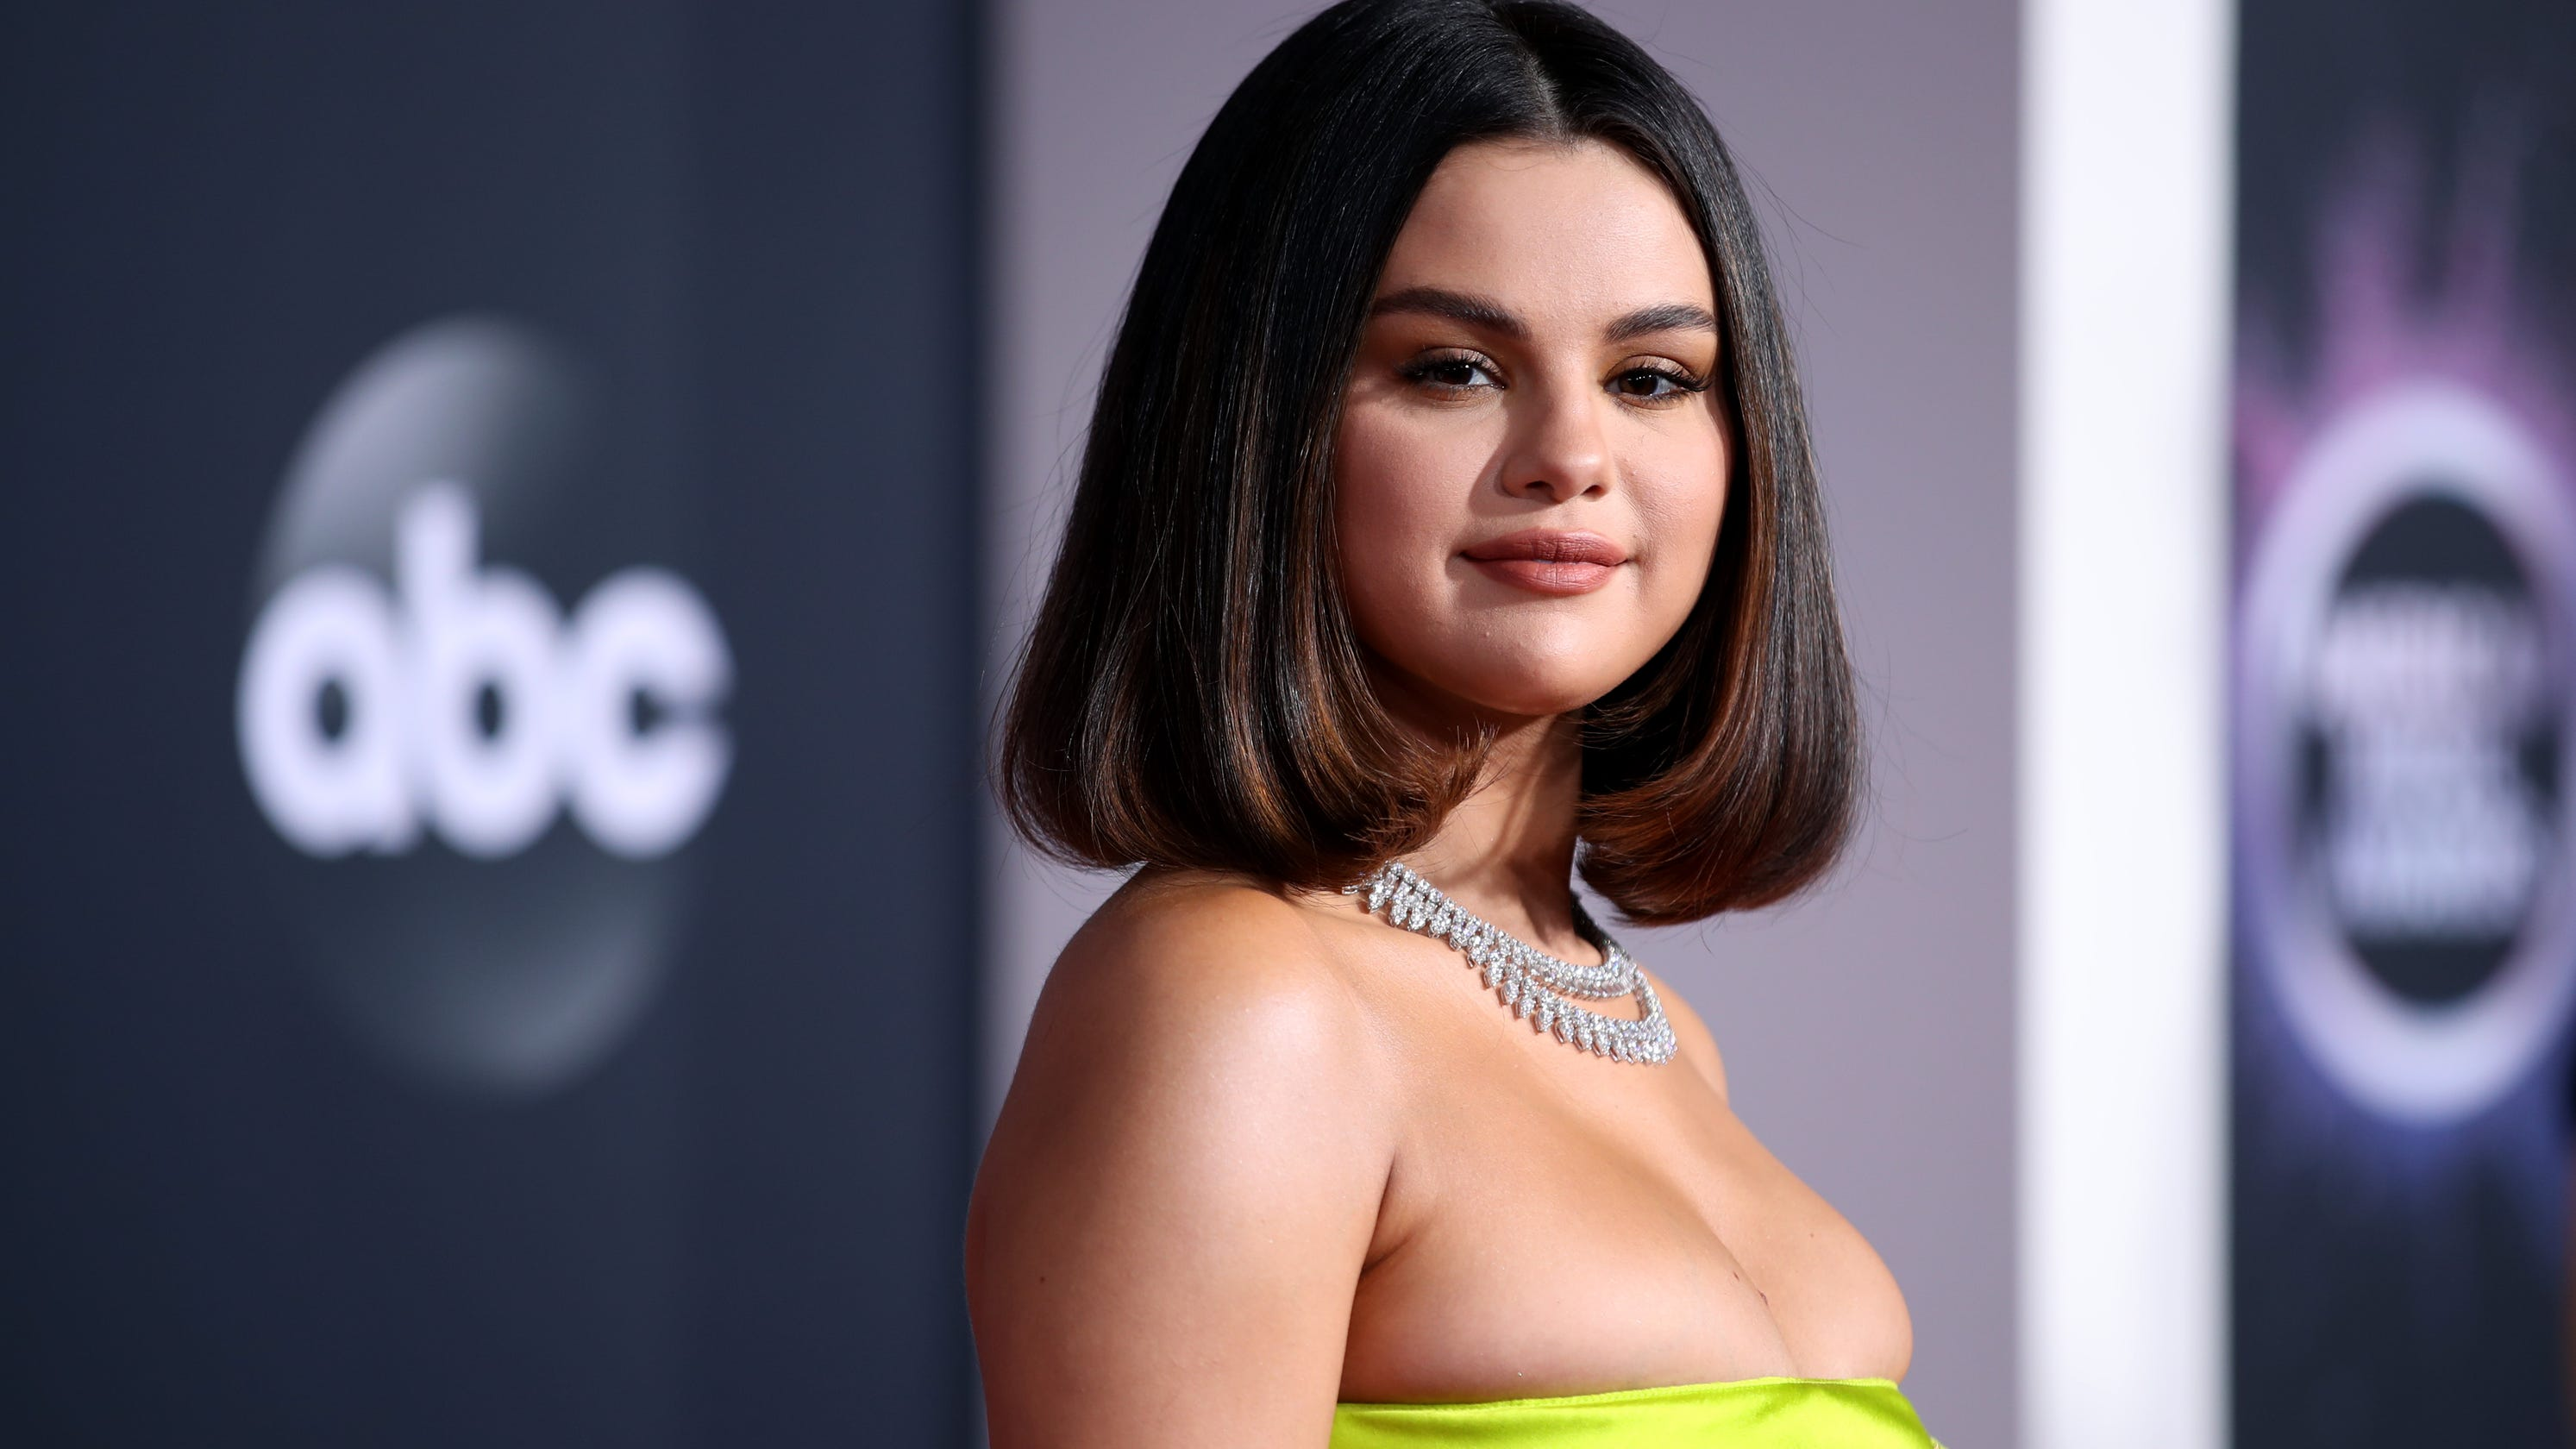 AMAs: Selena Gomez 'feels good' after first live TV performance in two years